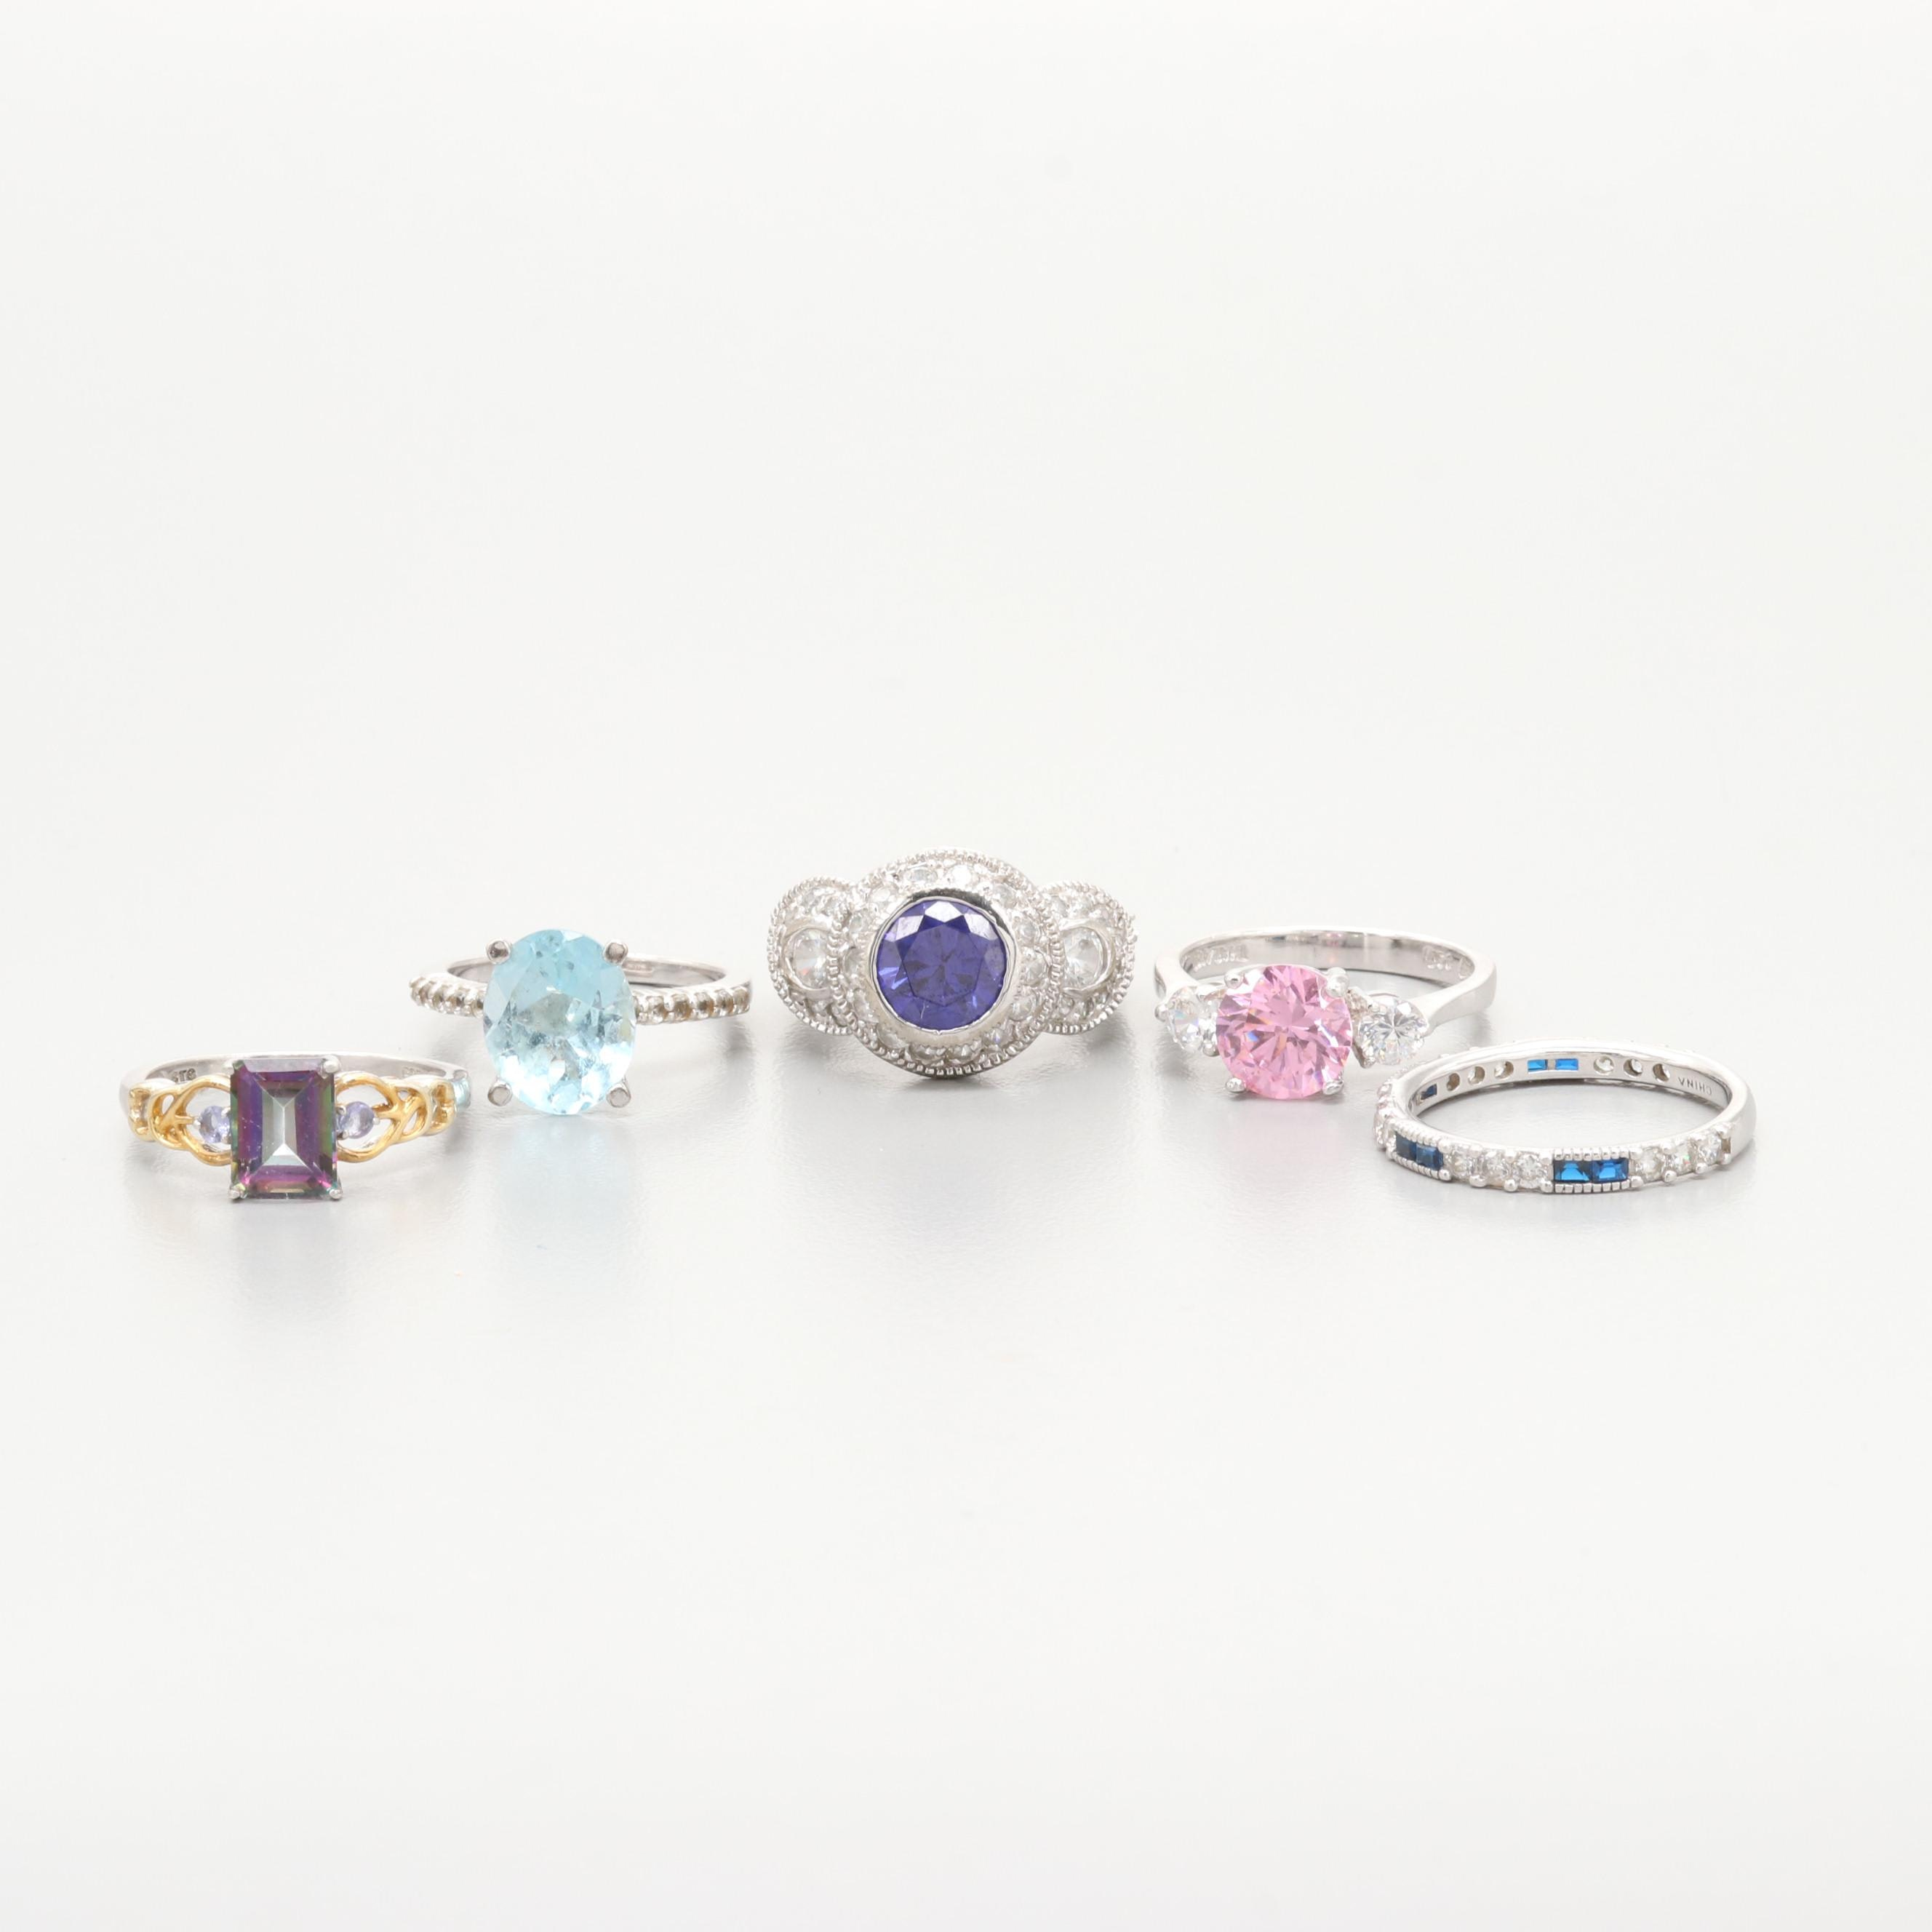 Assorted Sterling Silver Topaz and Cubic Zirconia Rings